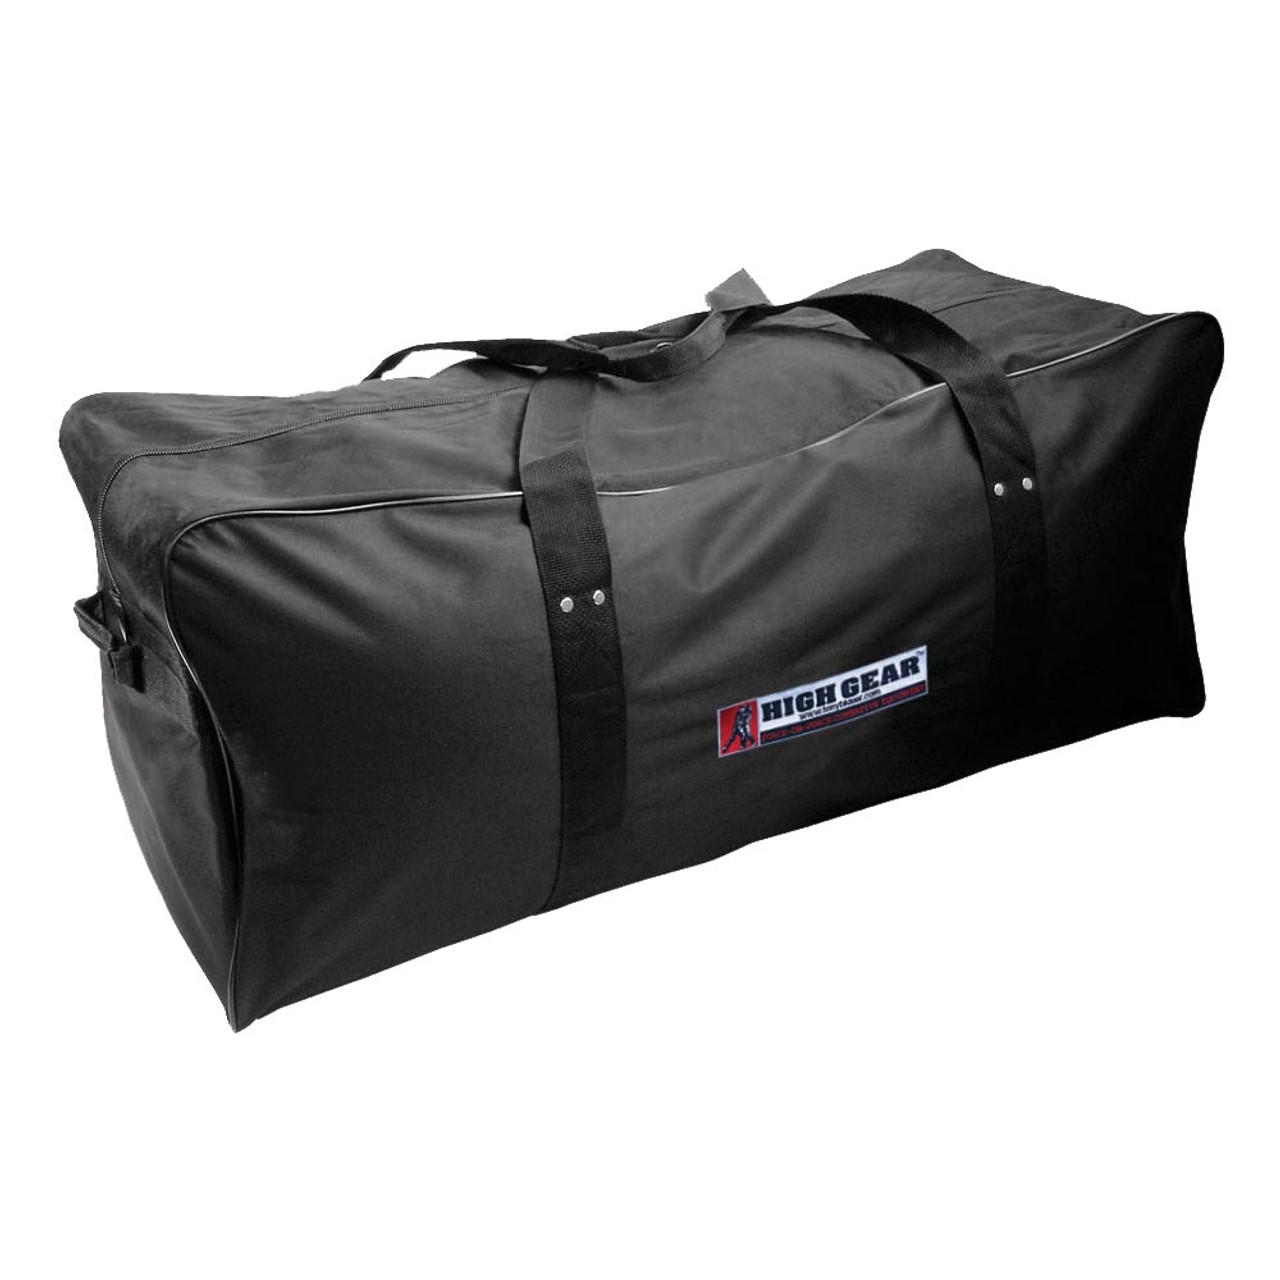 High Gear Transport Bag